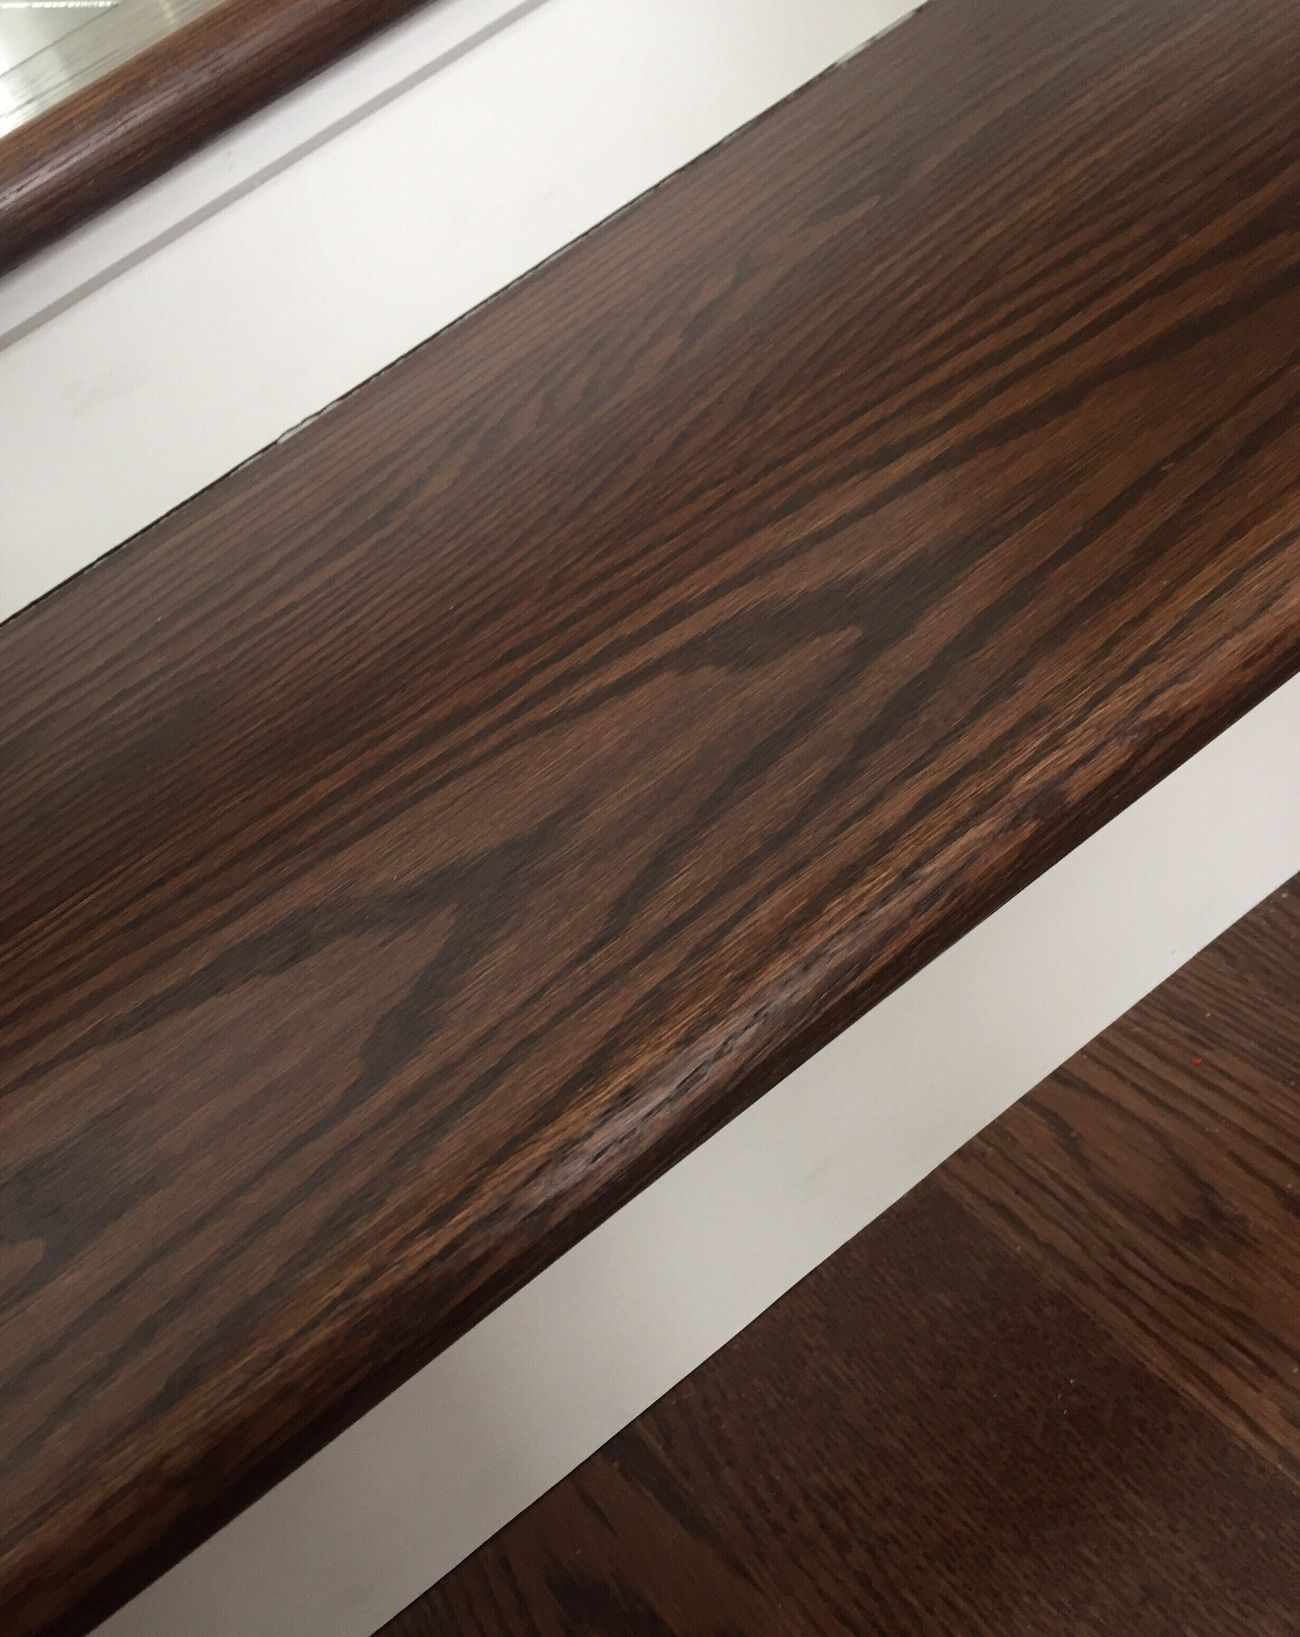 Stairs Wood White Lines Catching Up Well Organised Pattern Pieces Straight Lines Paint Wooden Texture Wood Finish Trend Construction Renovations